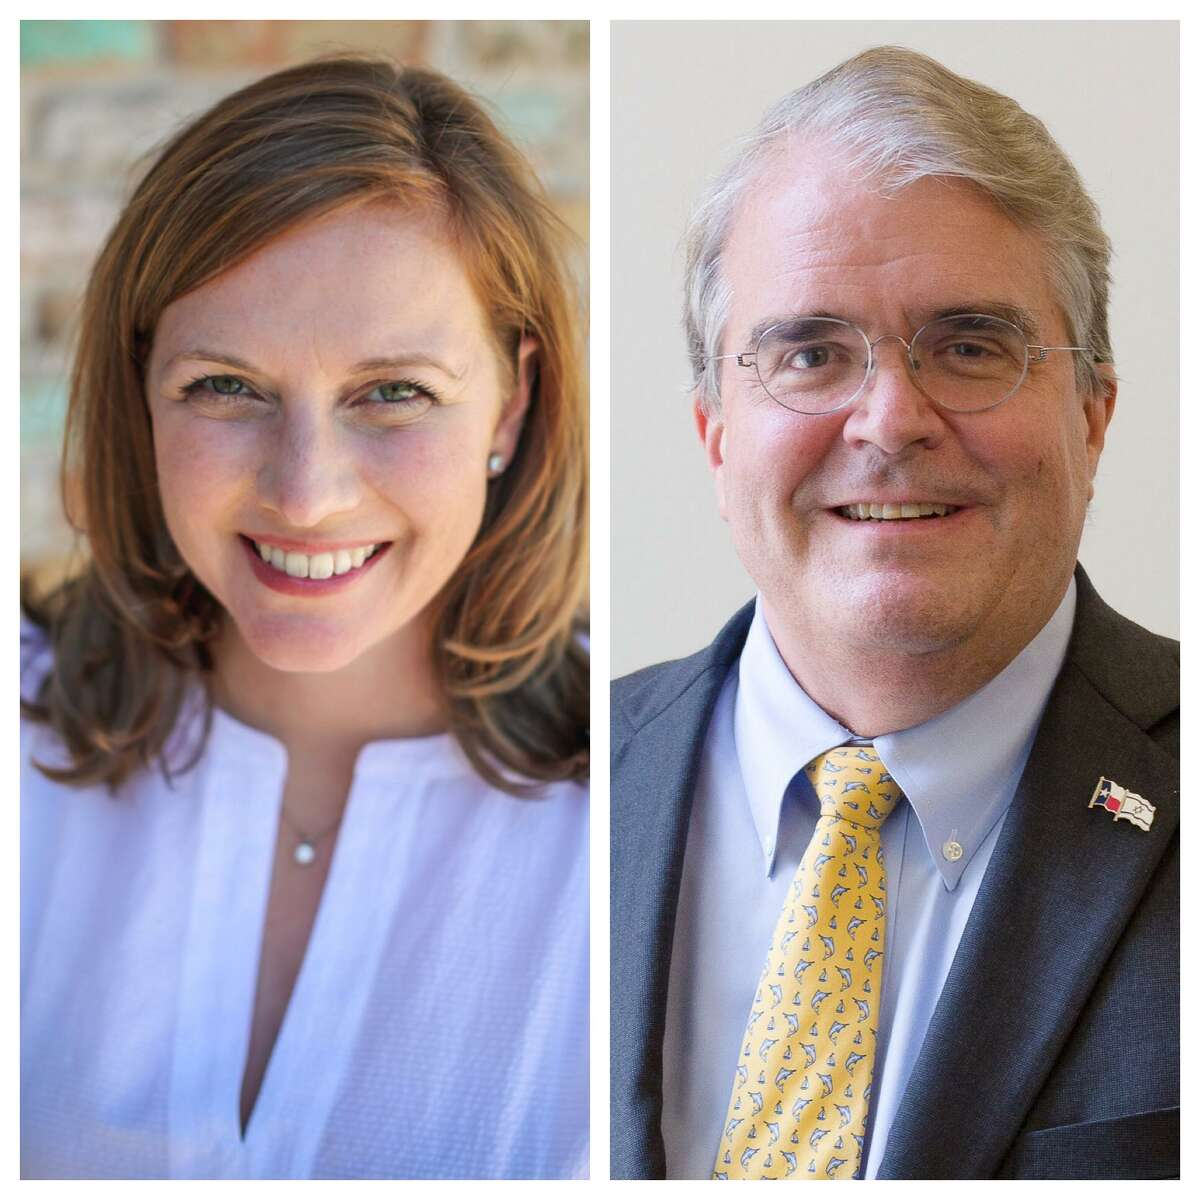 Democrat Lizzie Pannill Fletcher and Republican John Culberson are running for U.S. Congress in Houston's Congressional District 7. >>>See who's raking in the most PAC money in US campaigns so far ...